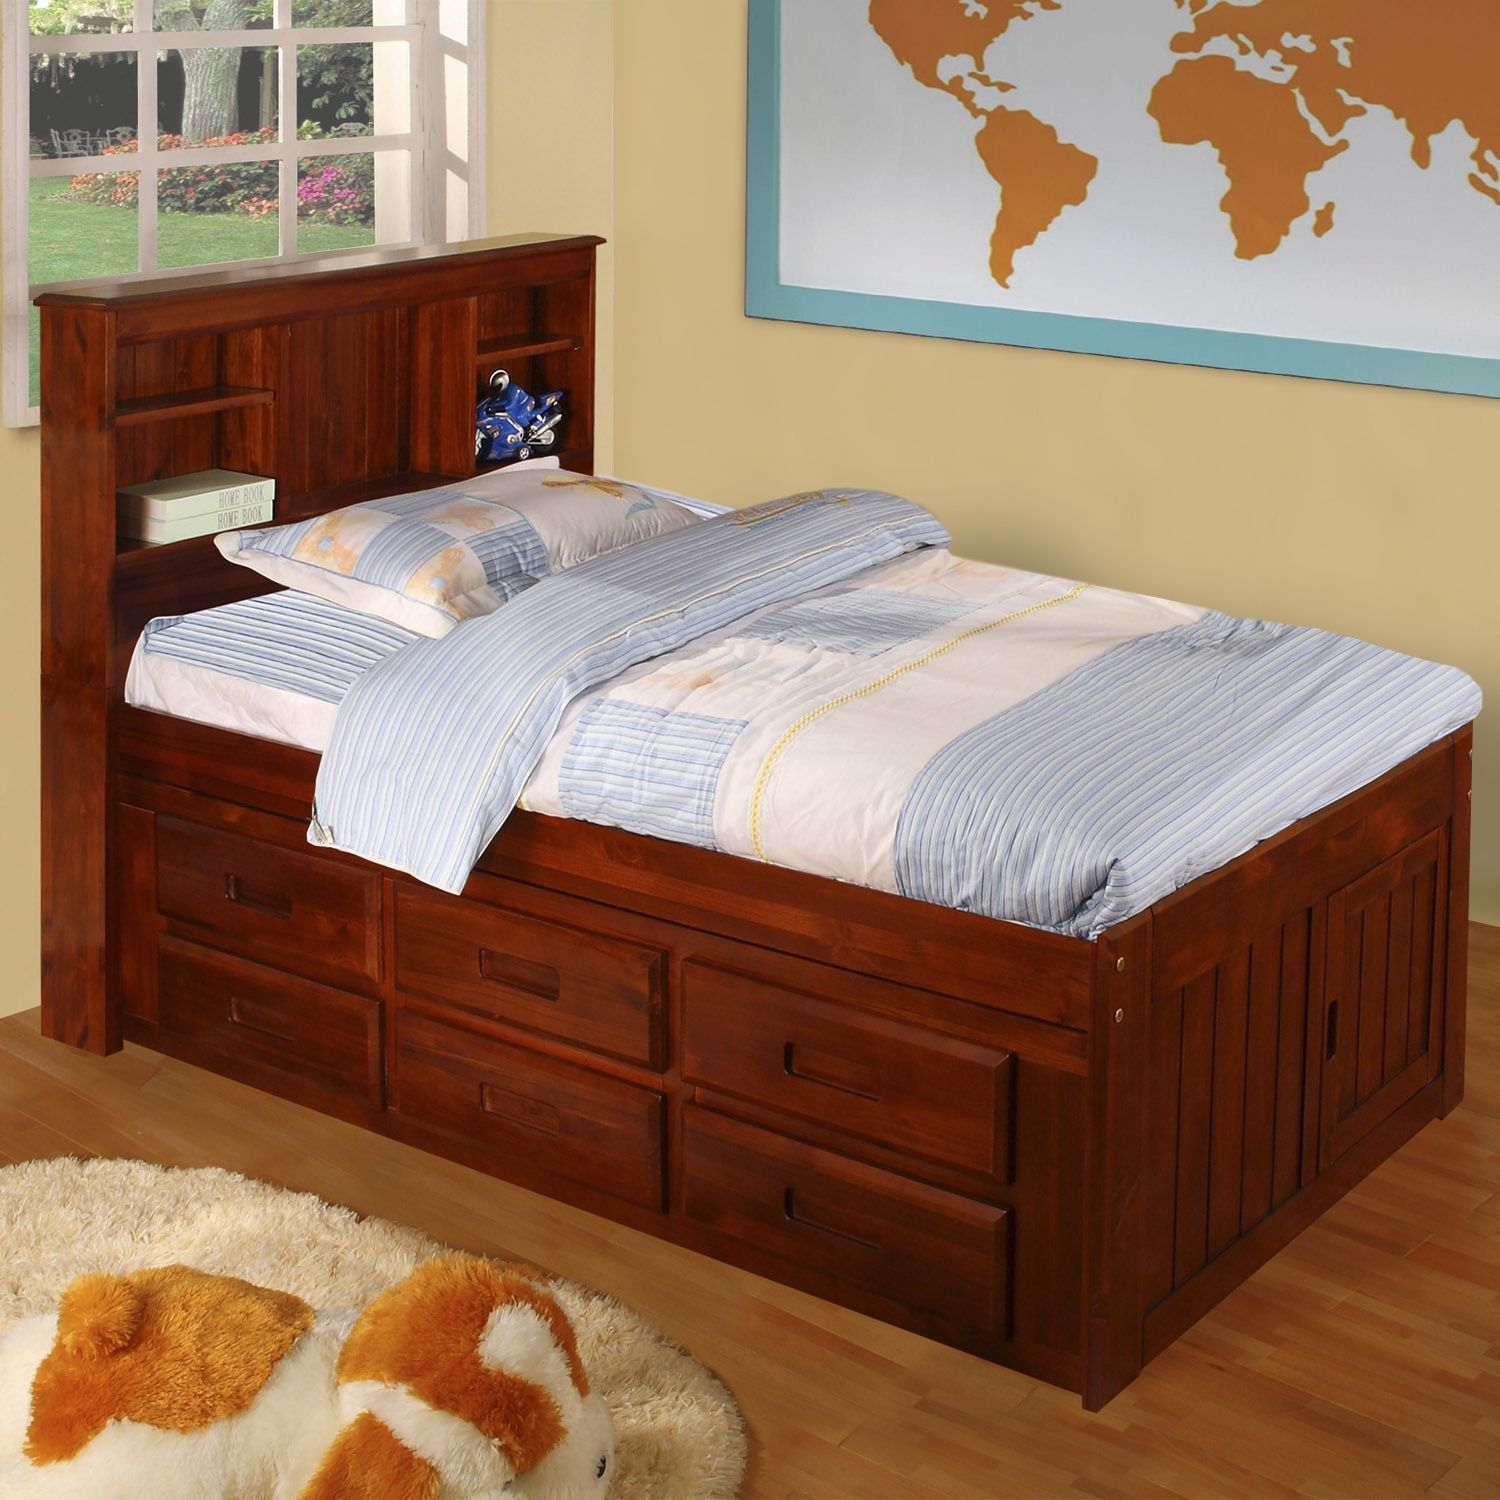 Merlot Solid Pine Twinsized Captain's Bed with 12 drawers